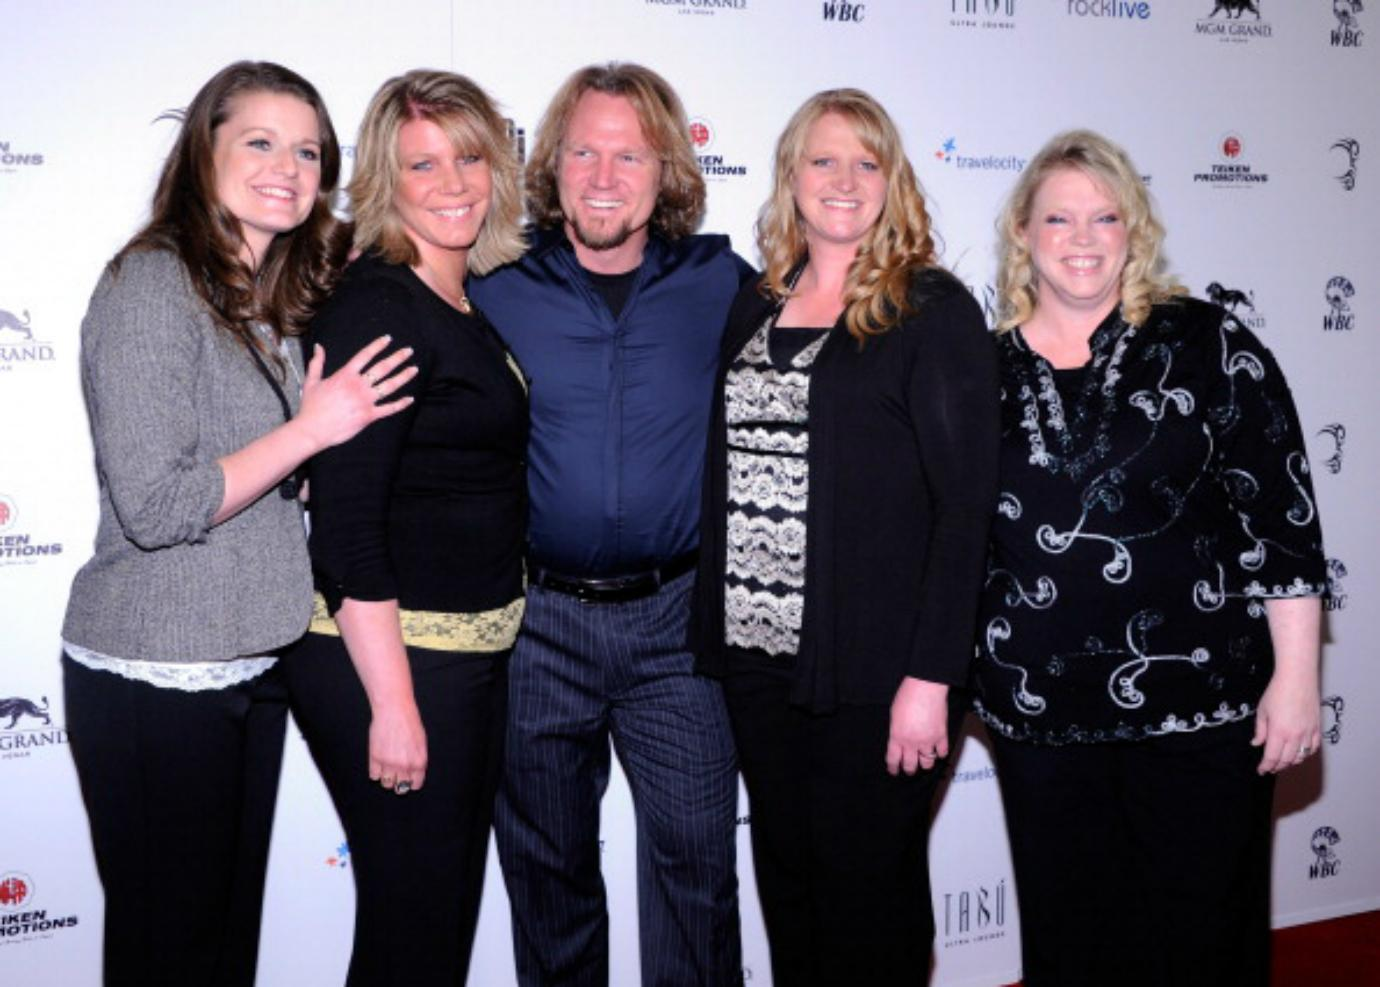 The cast of 'Sister Wives' poses on the red carpet